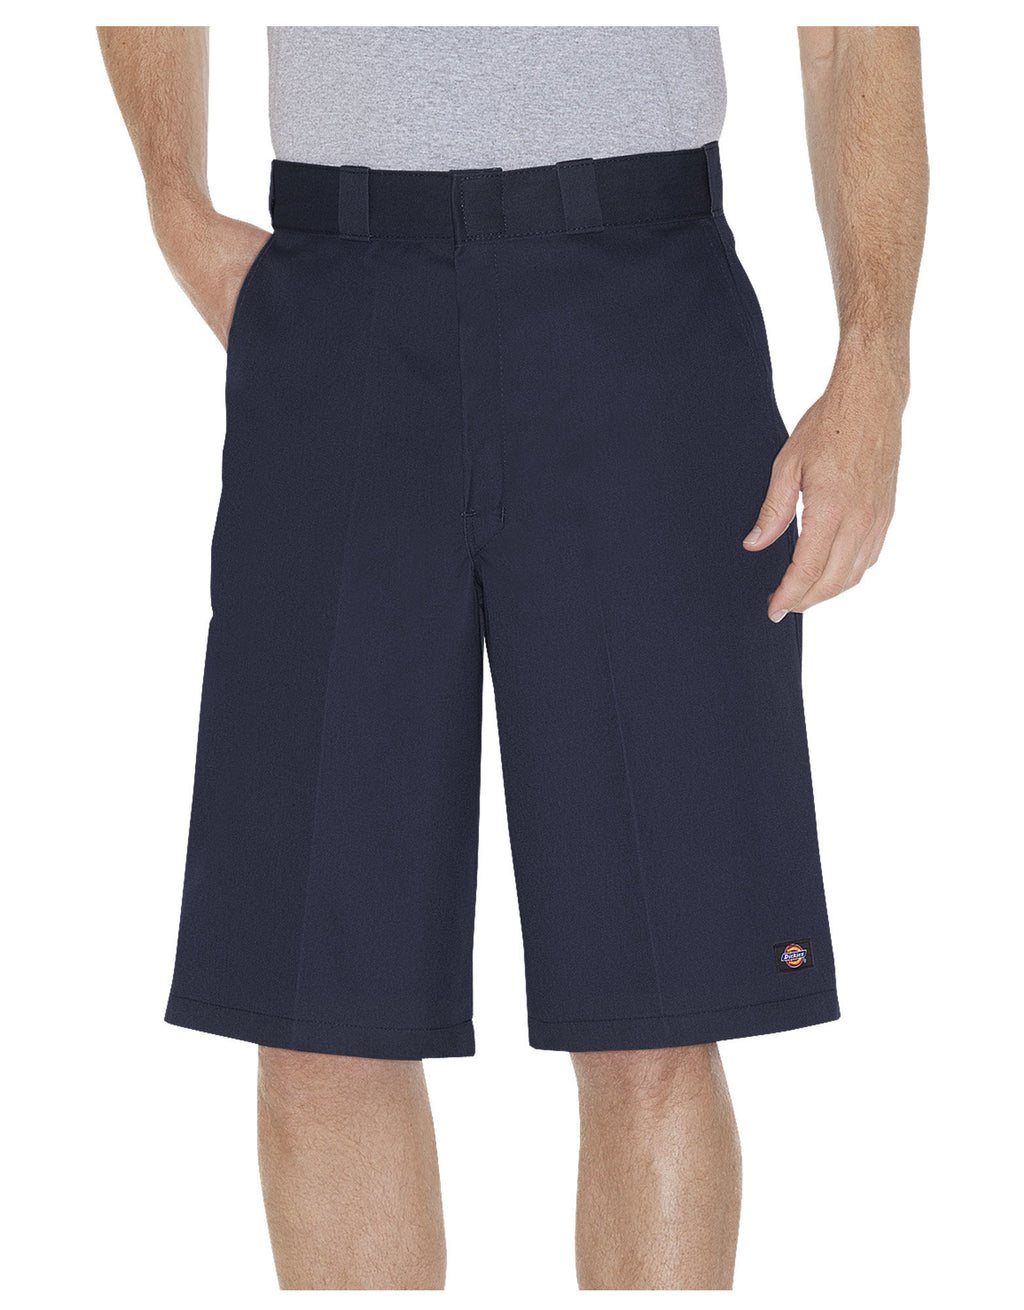 Dickies Men's Multi-Use Pocket Work Short Closeout